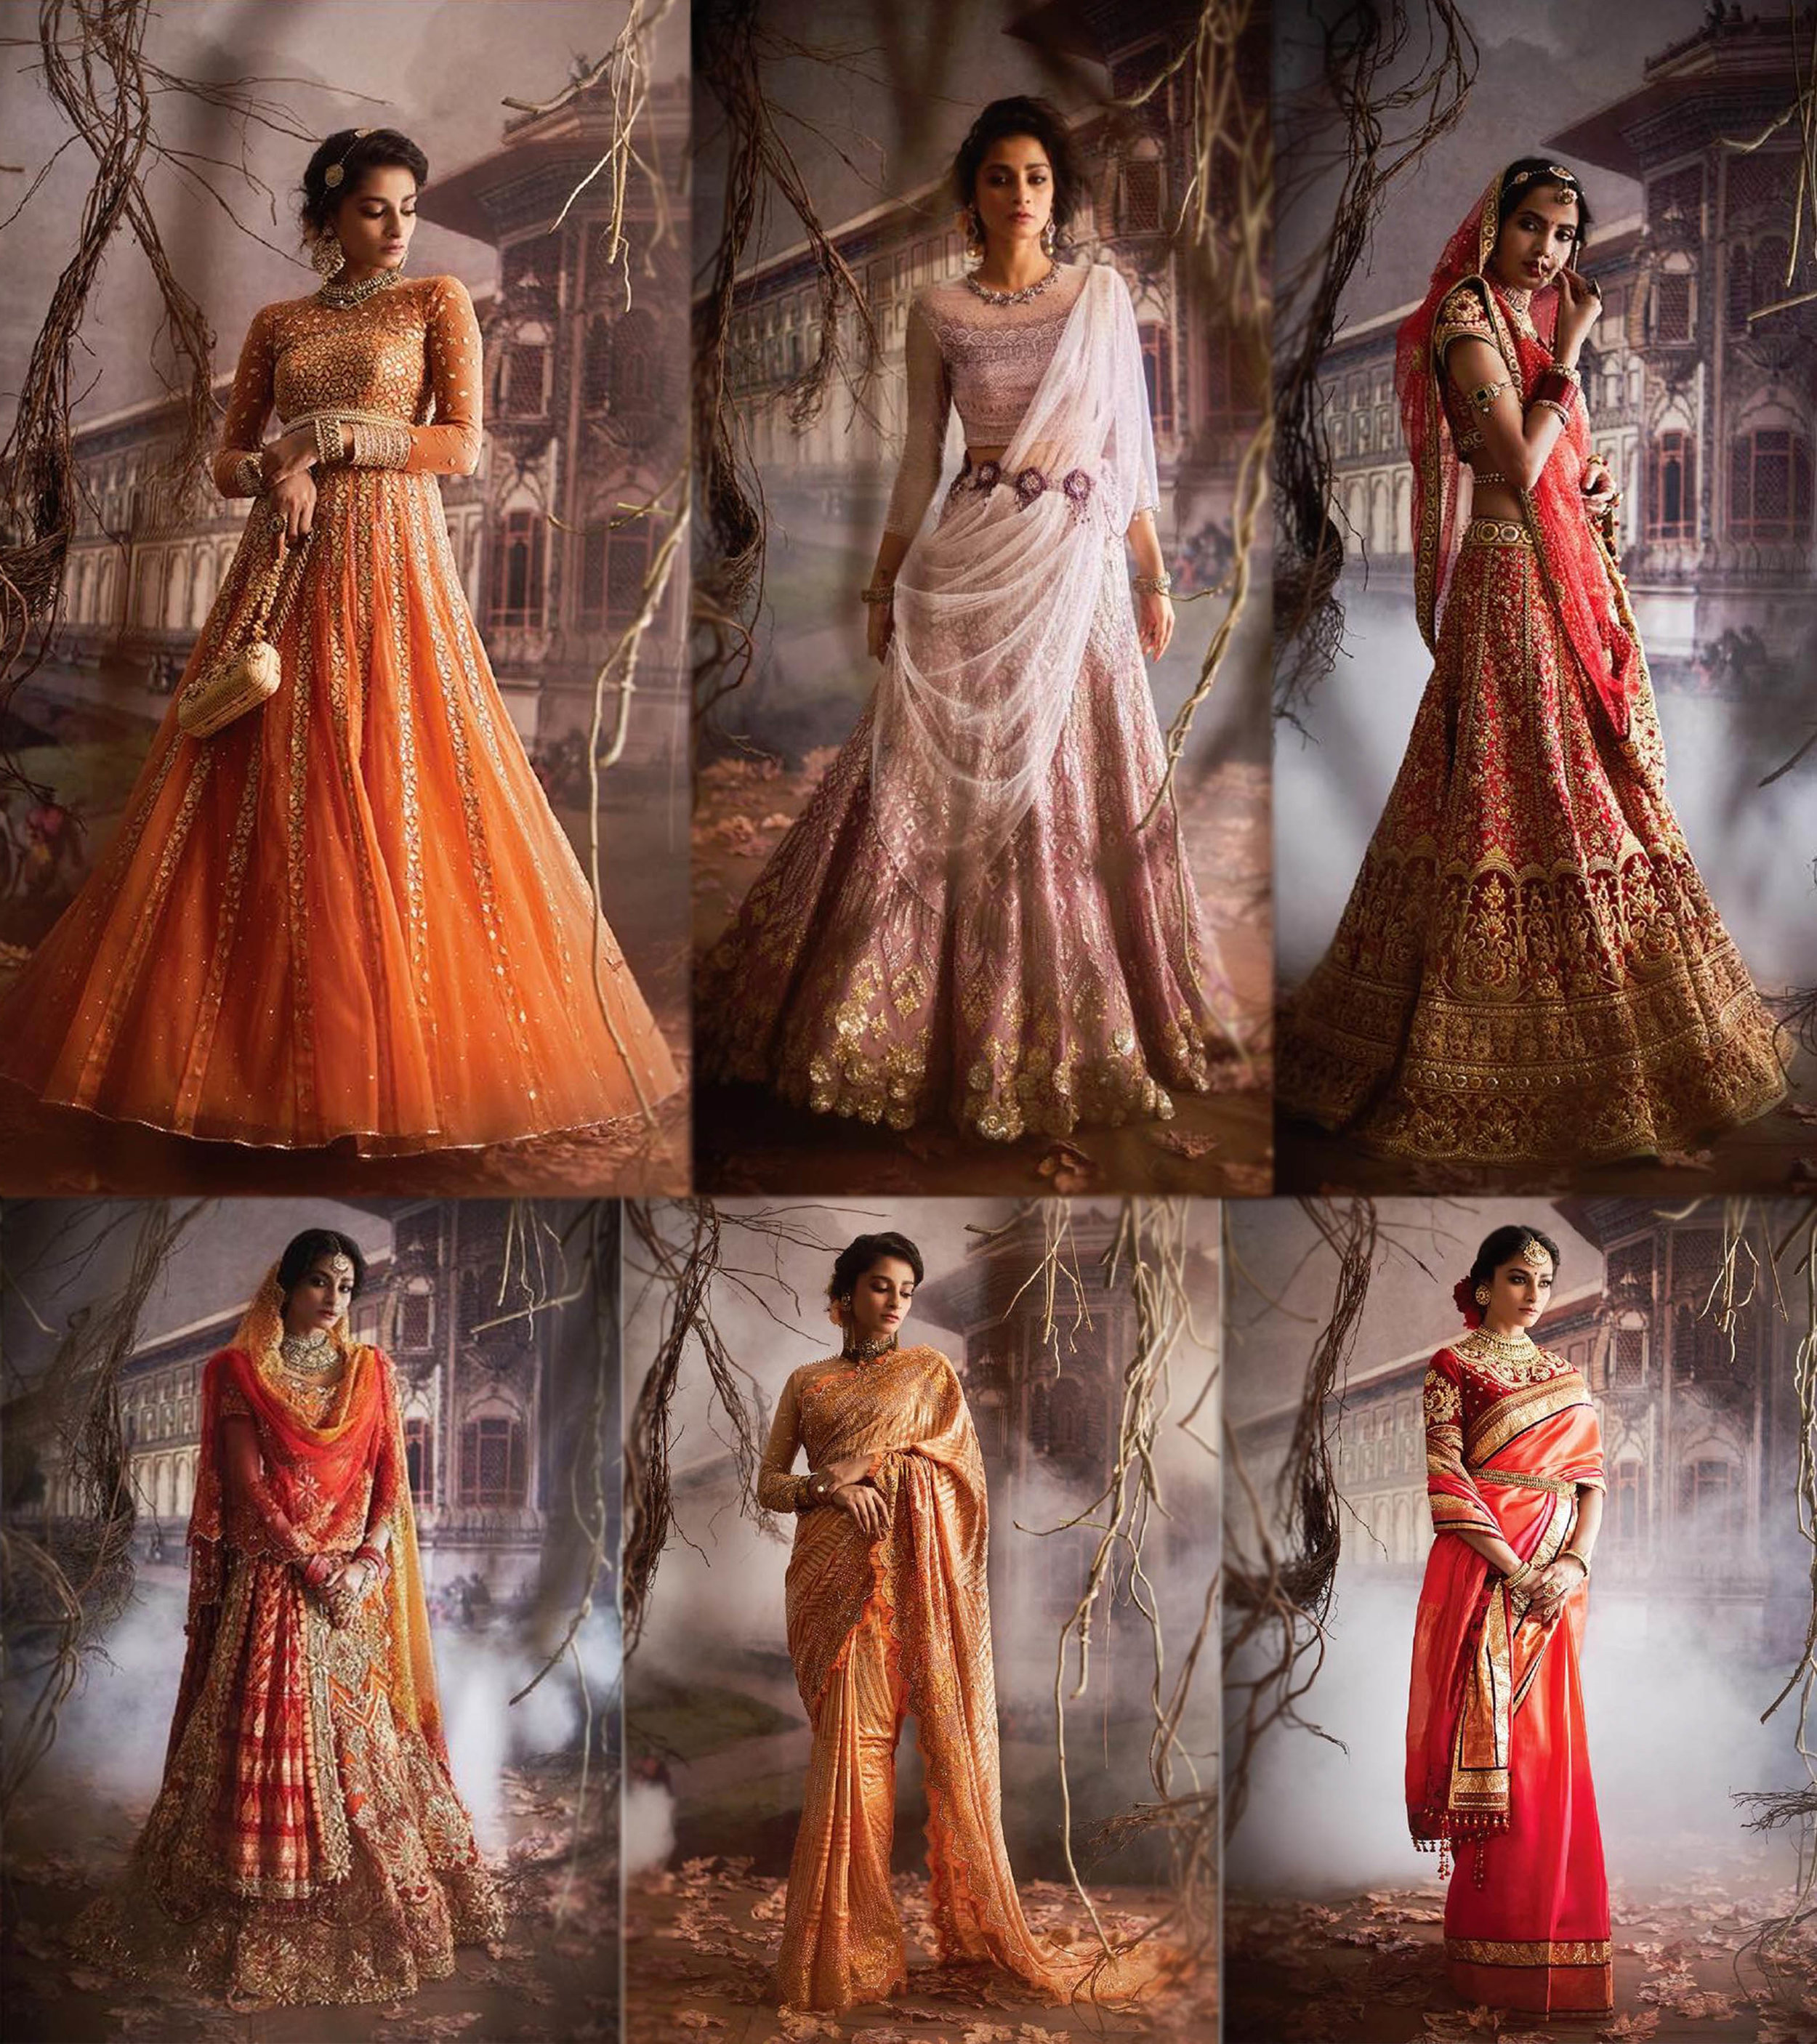 Tarun Tahiliani - These lehengas draw inspiration from royal lavishness and opulent traditions. Perfect for bridal wear on your wedding day.